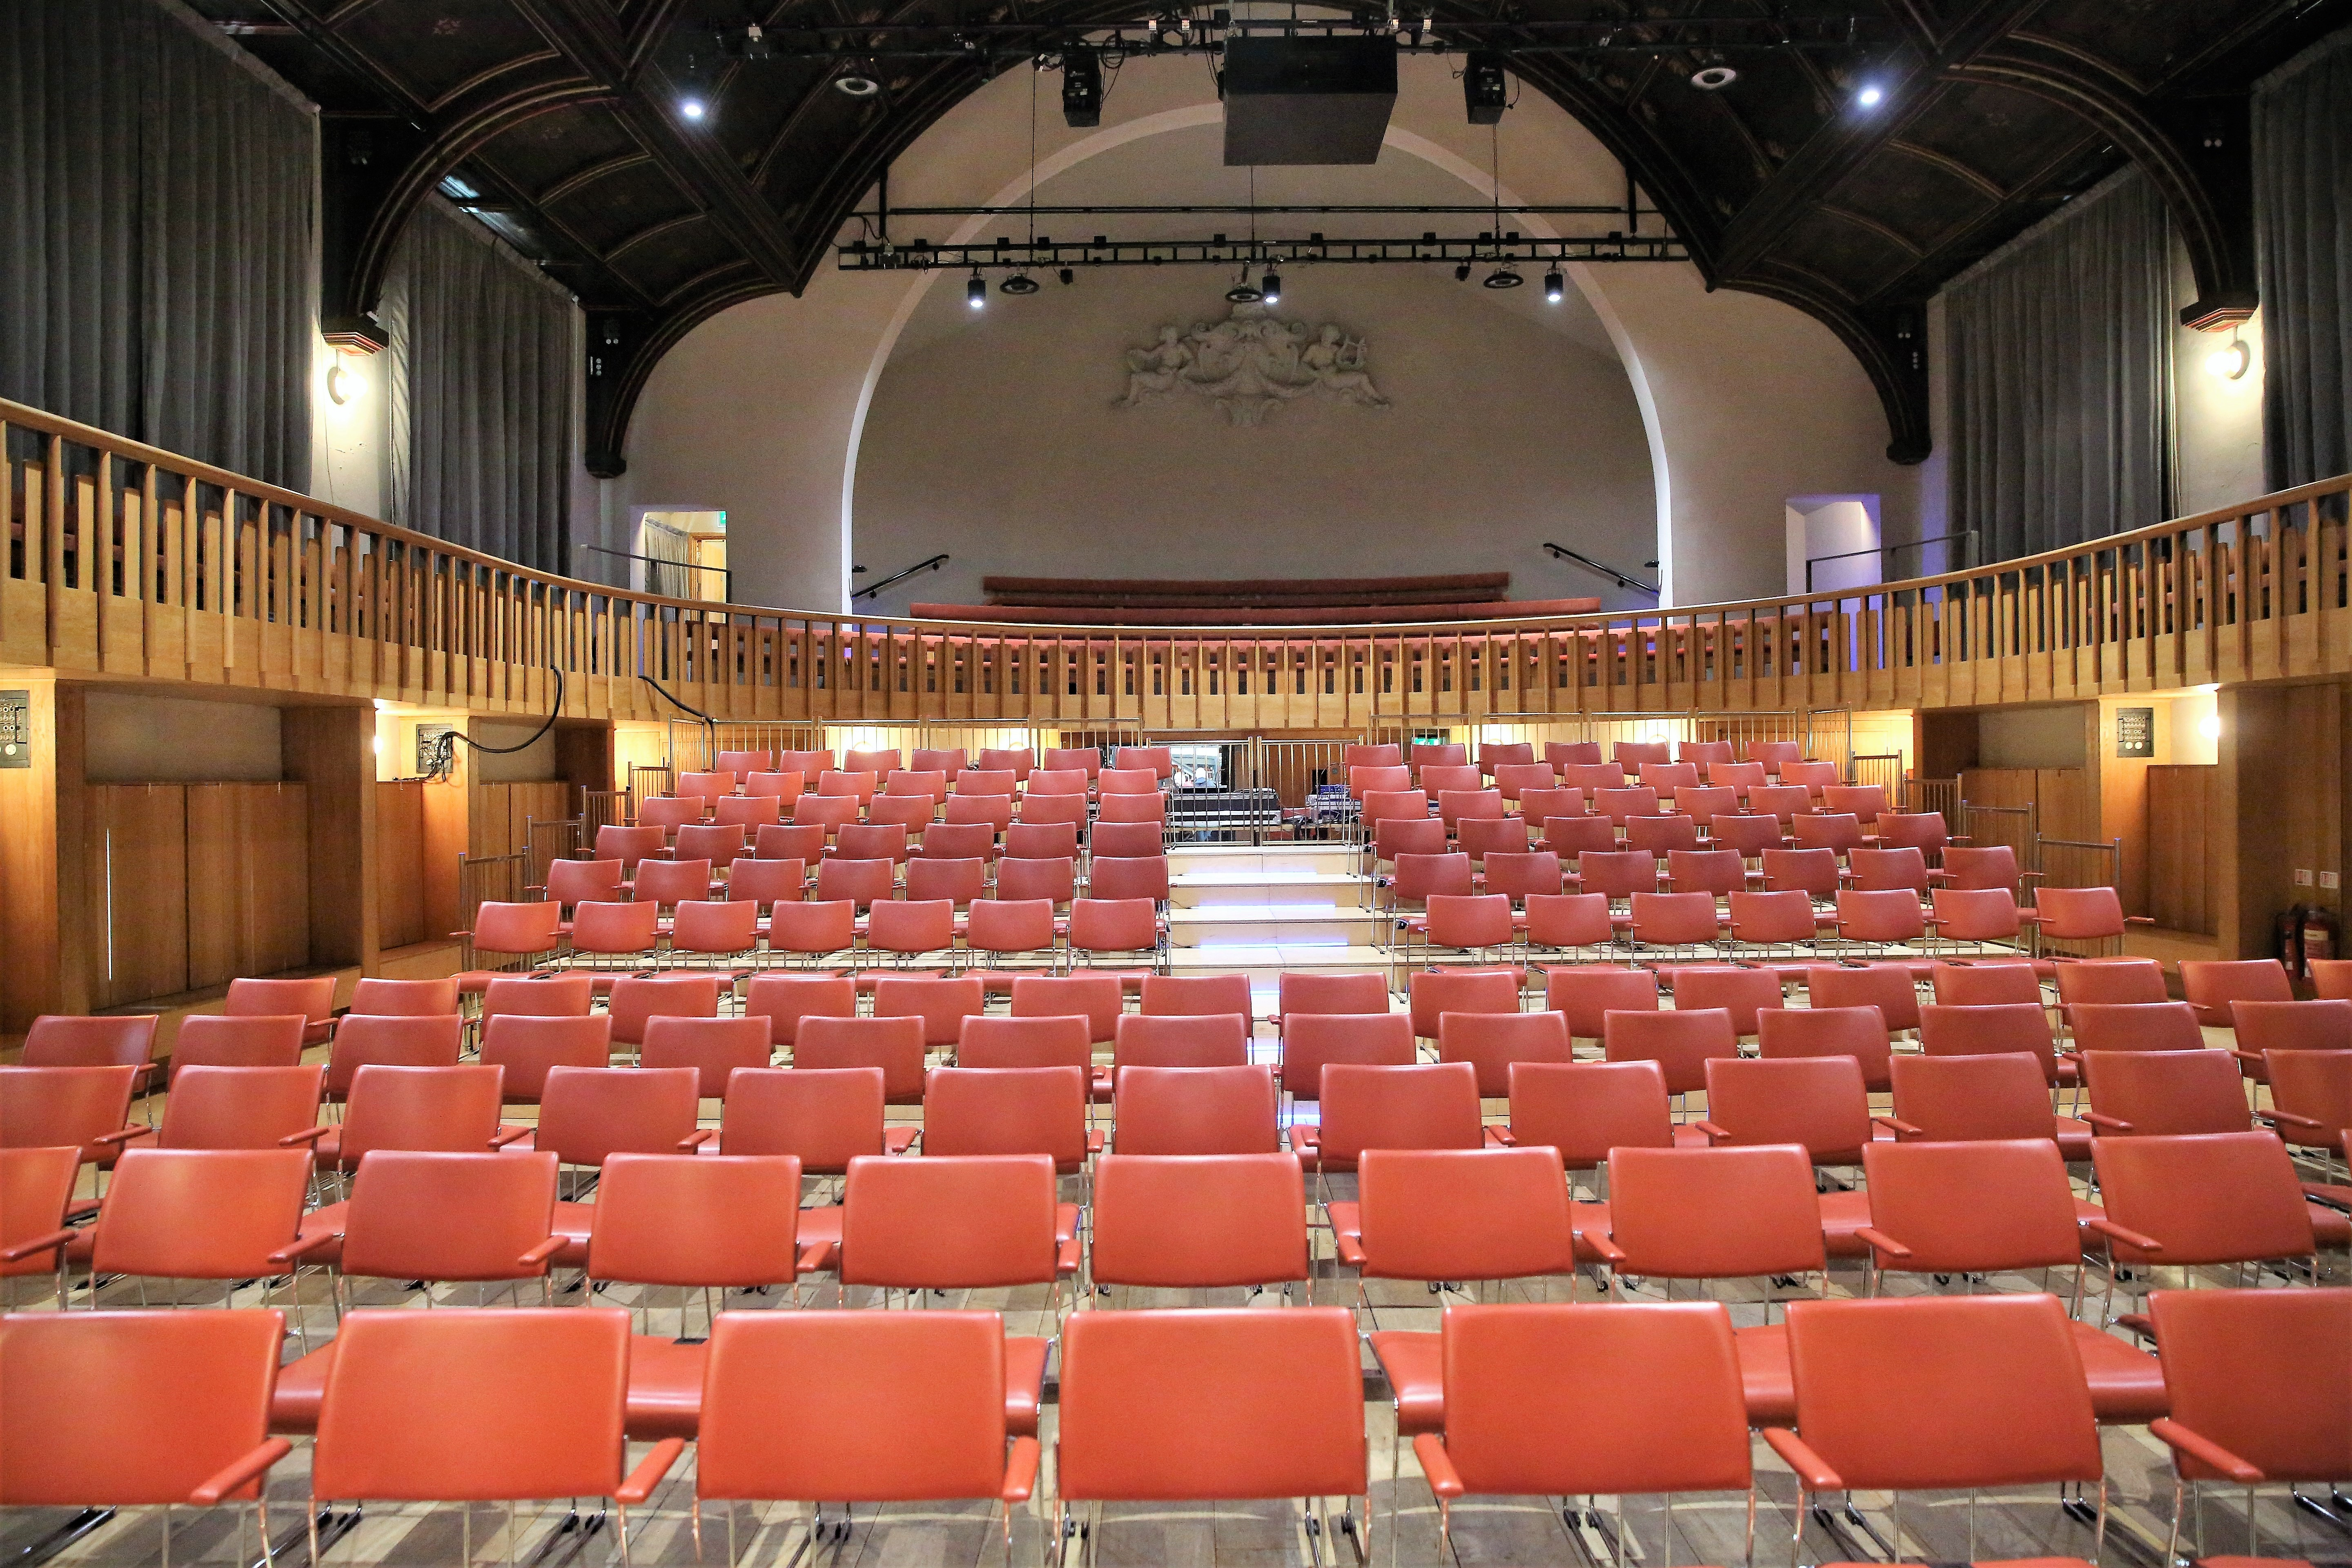 PREVIEW: upcoming events at the Howard Assembly Room in Leeds